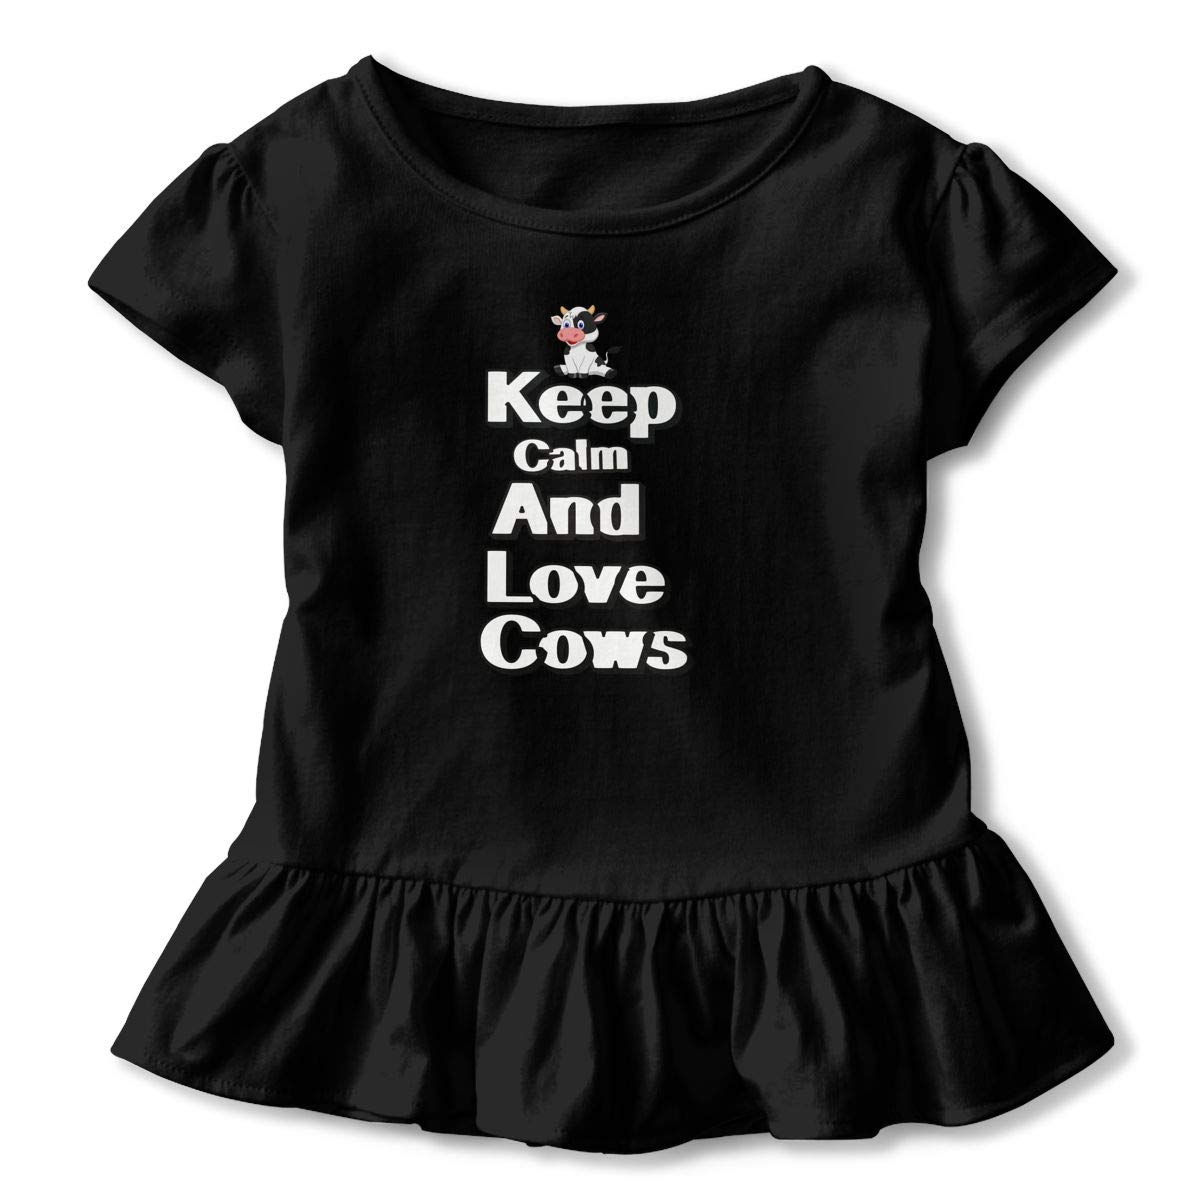 Keep Calm and Love Cow Toddler Baby Girls Short Sleeve Ruffle T-Shirt